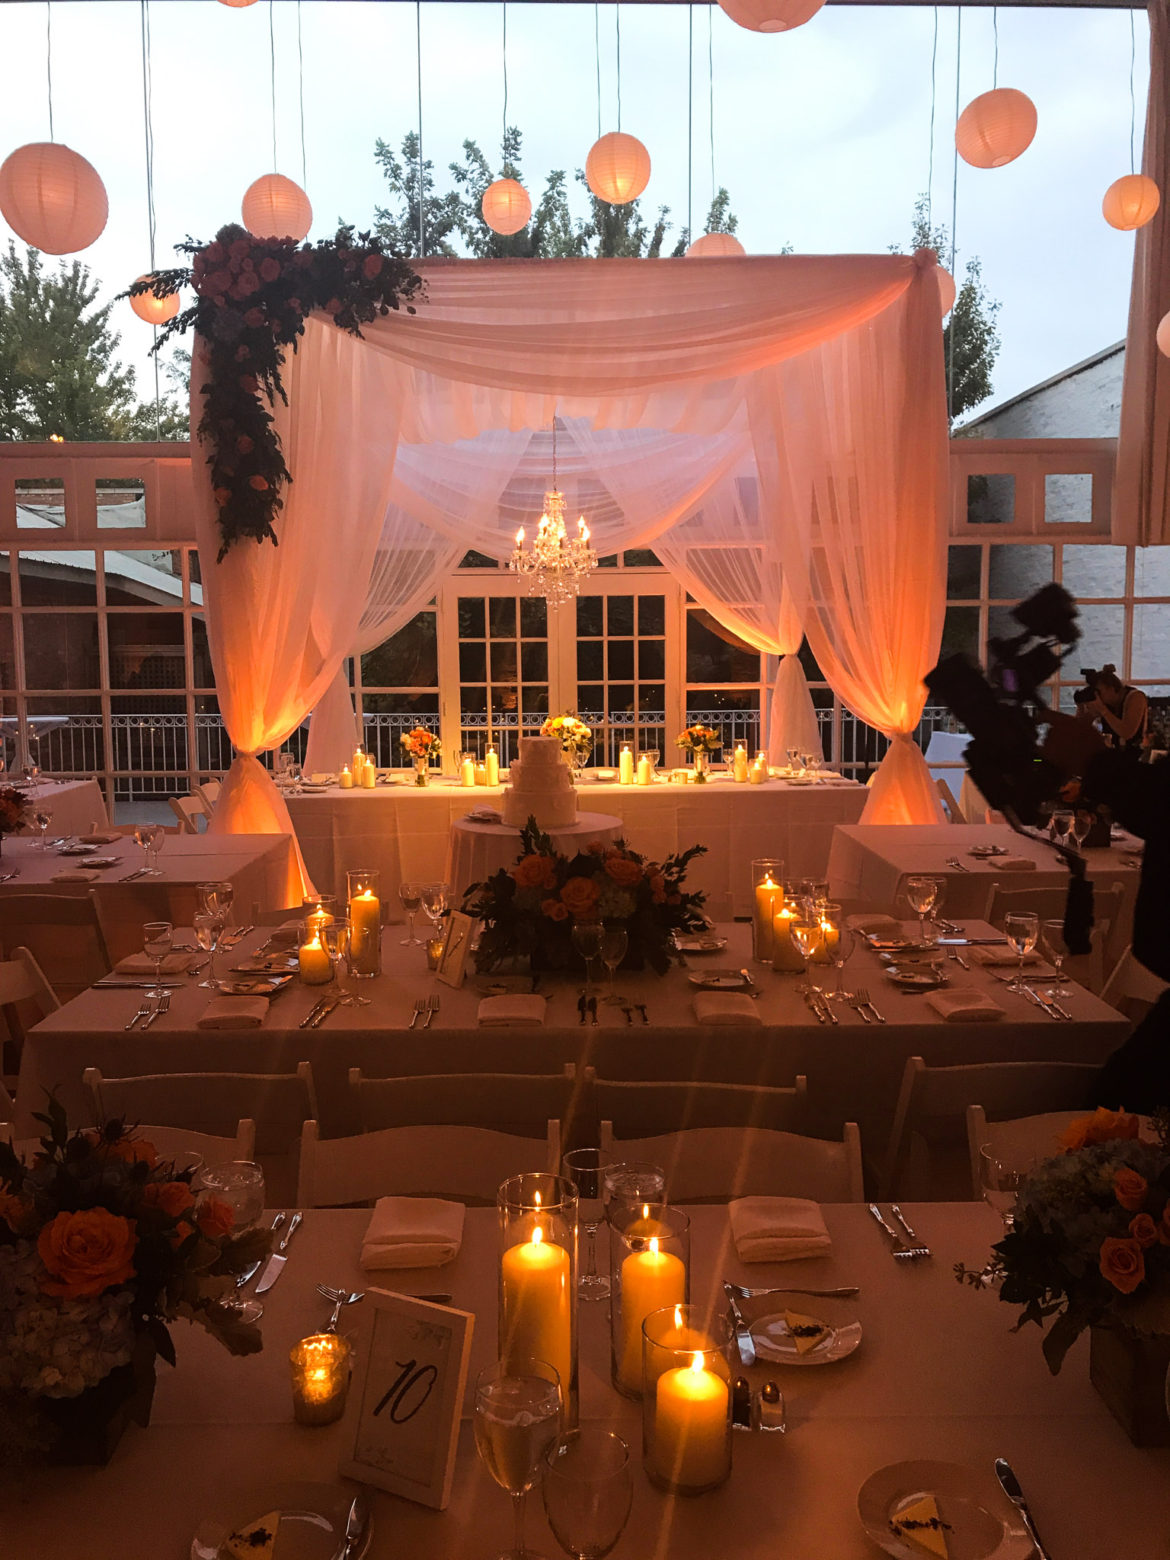 Elegant_Event_Lighting_Chicago_Prarie_Production_Wedding_Amber_Uplighting_Chuppah_Bridal_Canopy_Crystal_Chandelier_Paper_Lanterns_Paper_Globes_Flower